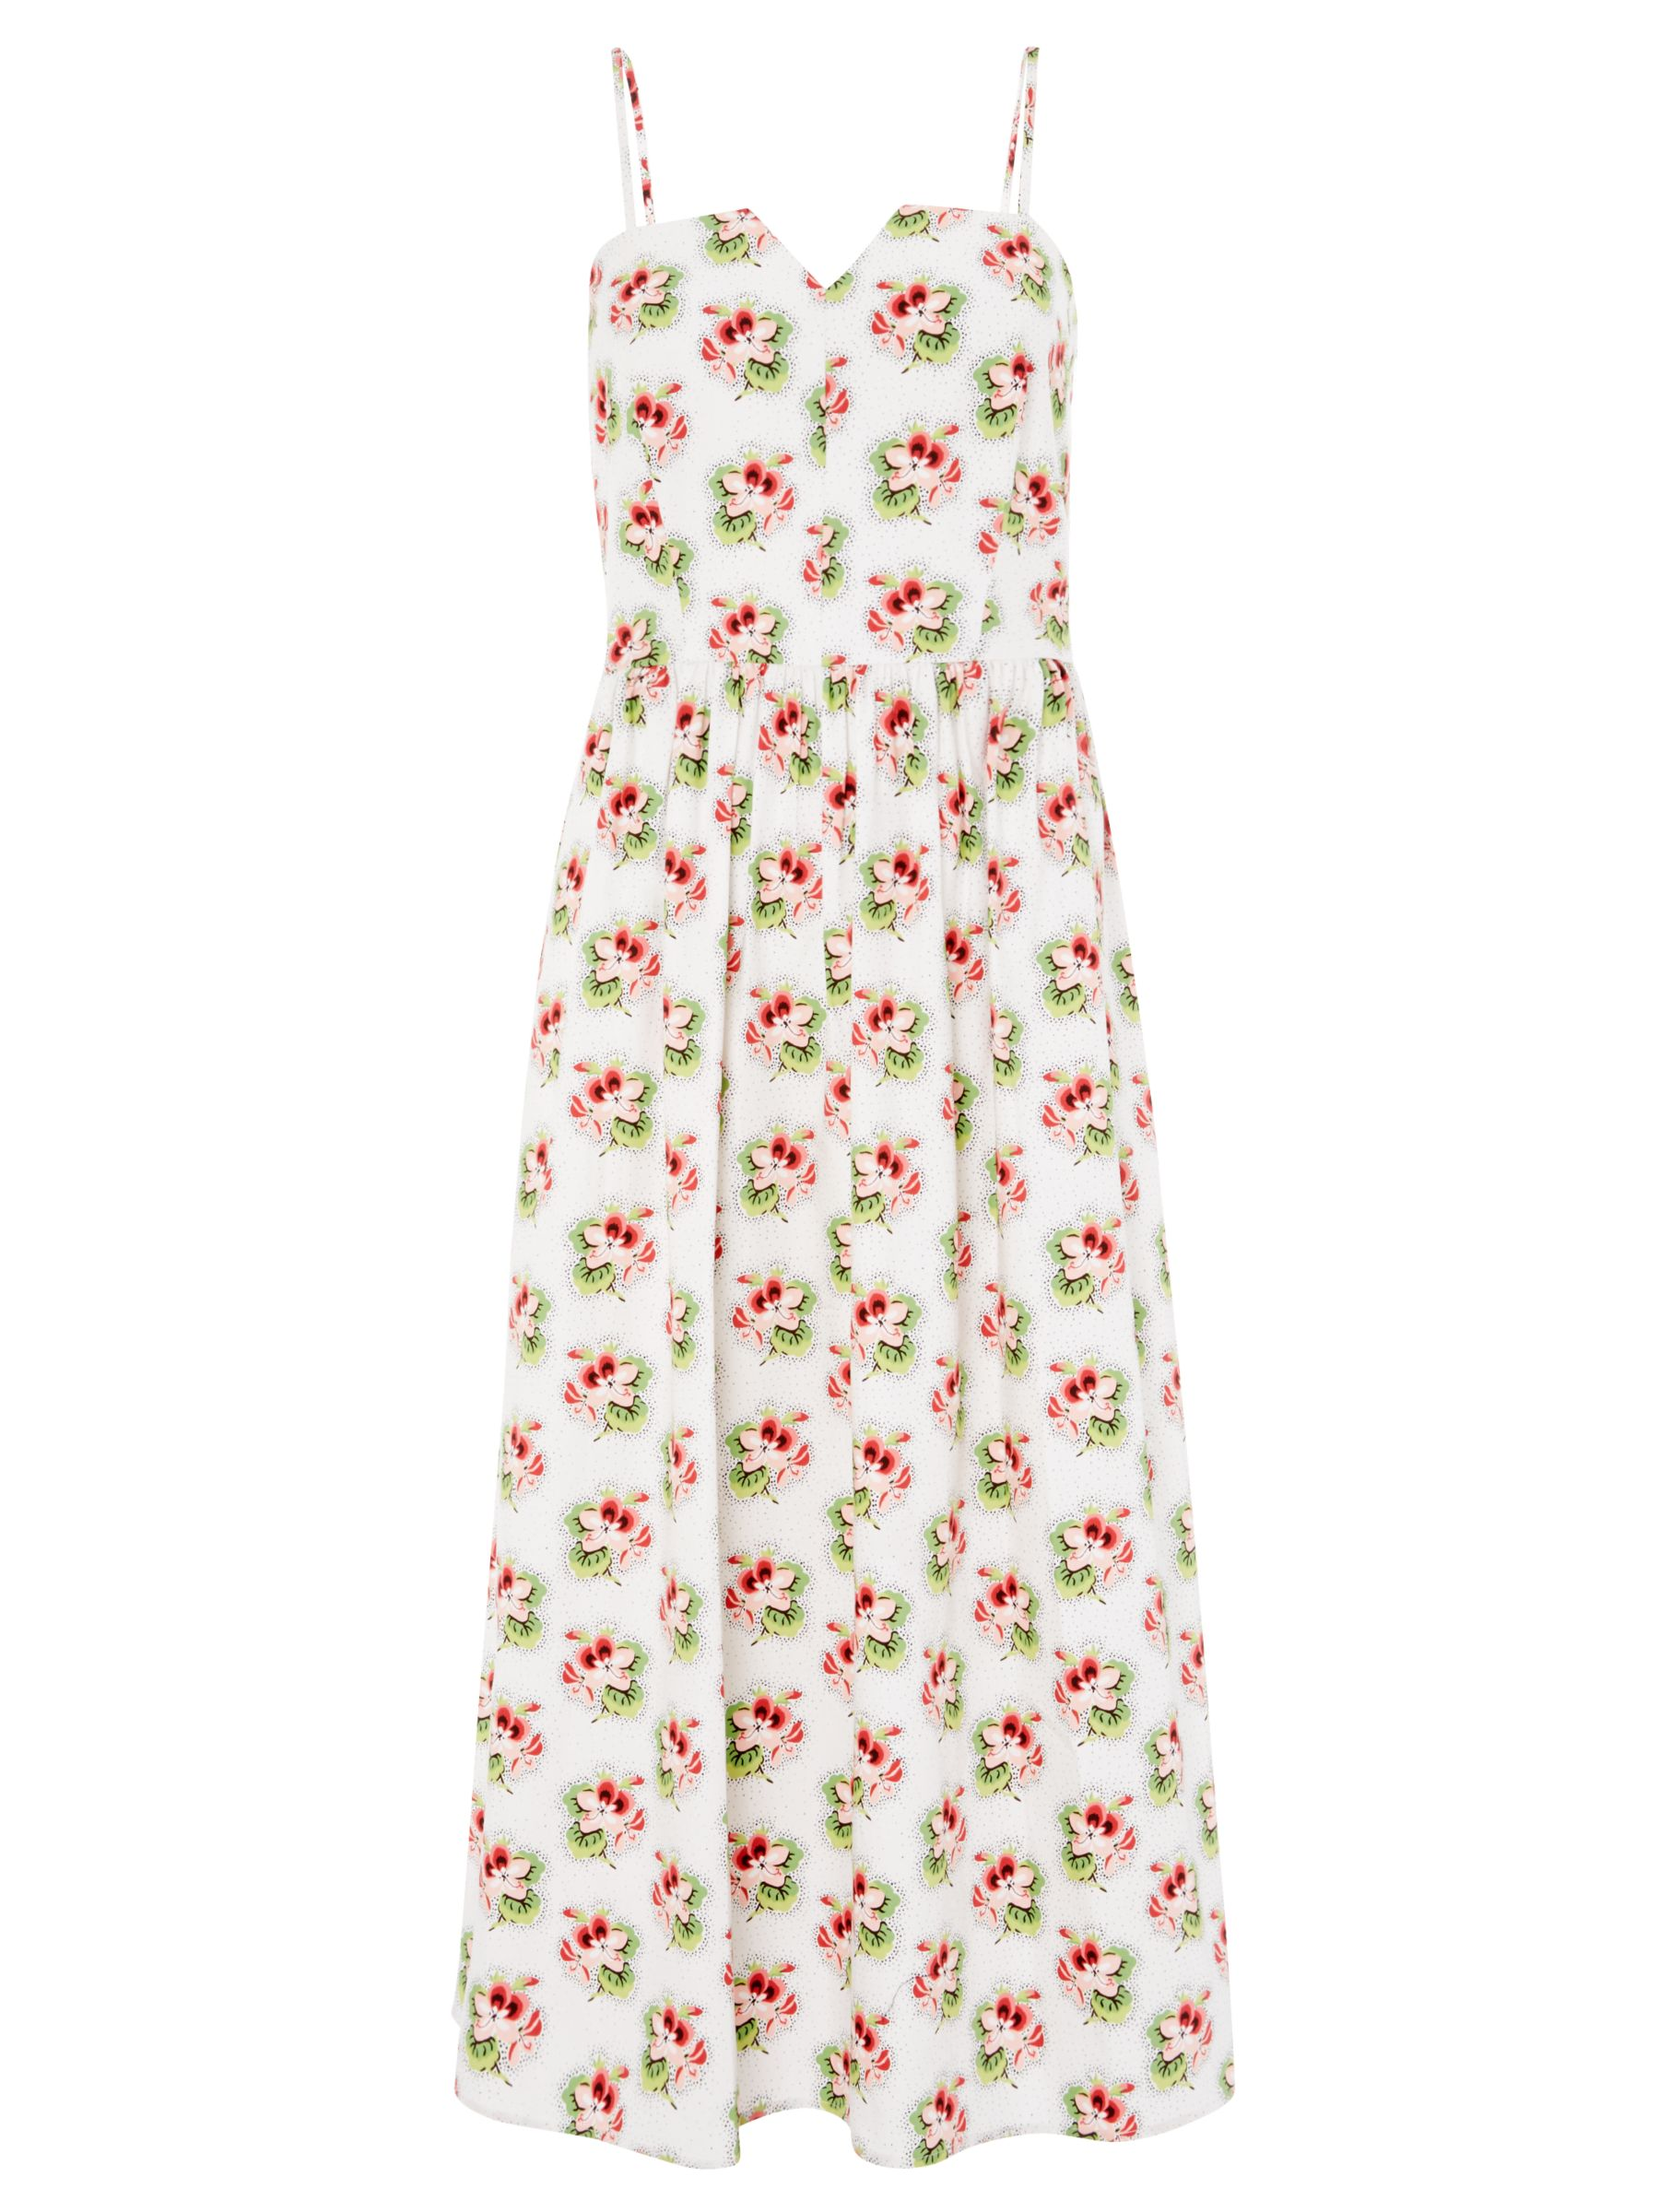 john lewis sylvia archive pansy print dress multi, john, lewis, sylvia, archive, pansy, print, dress, multi, john lewis, 10|8|18|12|14|16, women, womens dresses, fashion magazine, brands a-k, gifts, wedding, wedding clothing, female guests, 1901753